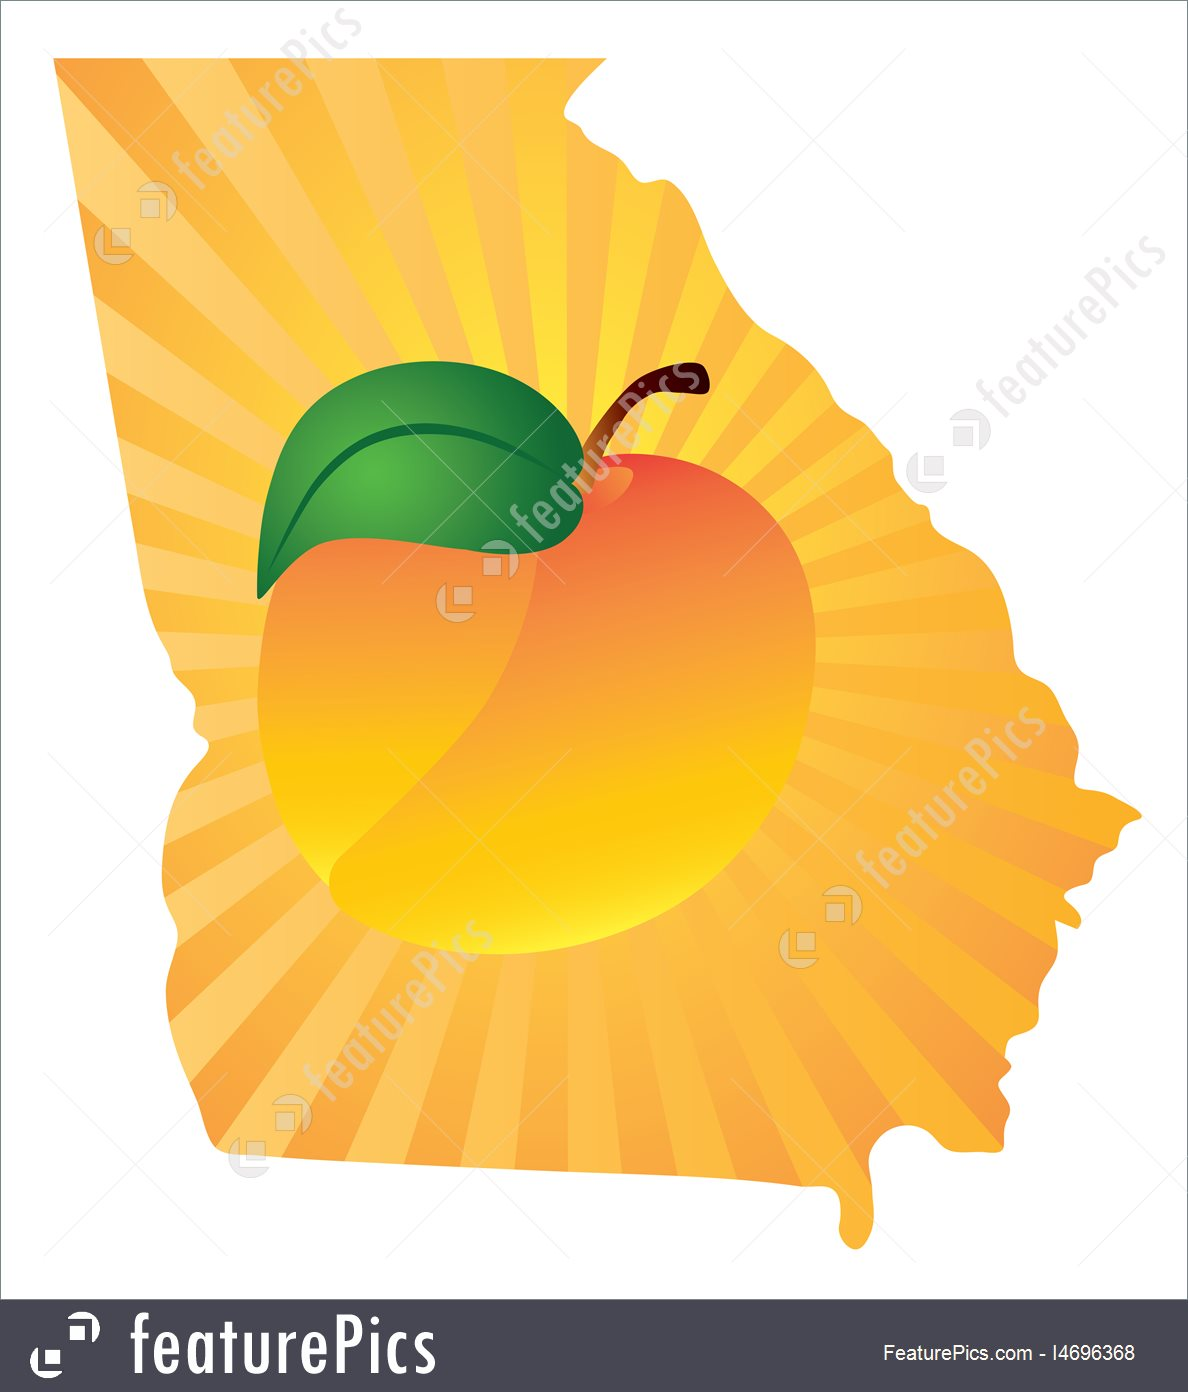 1188x1392 Georgia State With Peach Color Vector Illustration